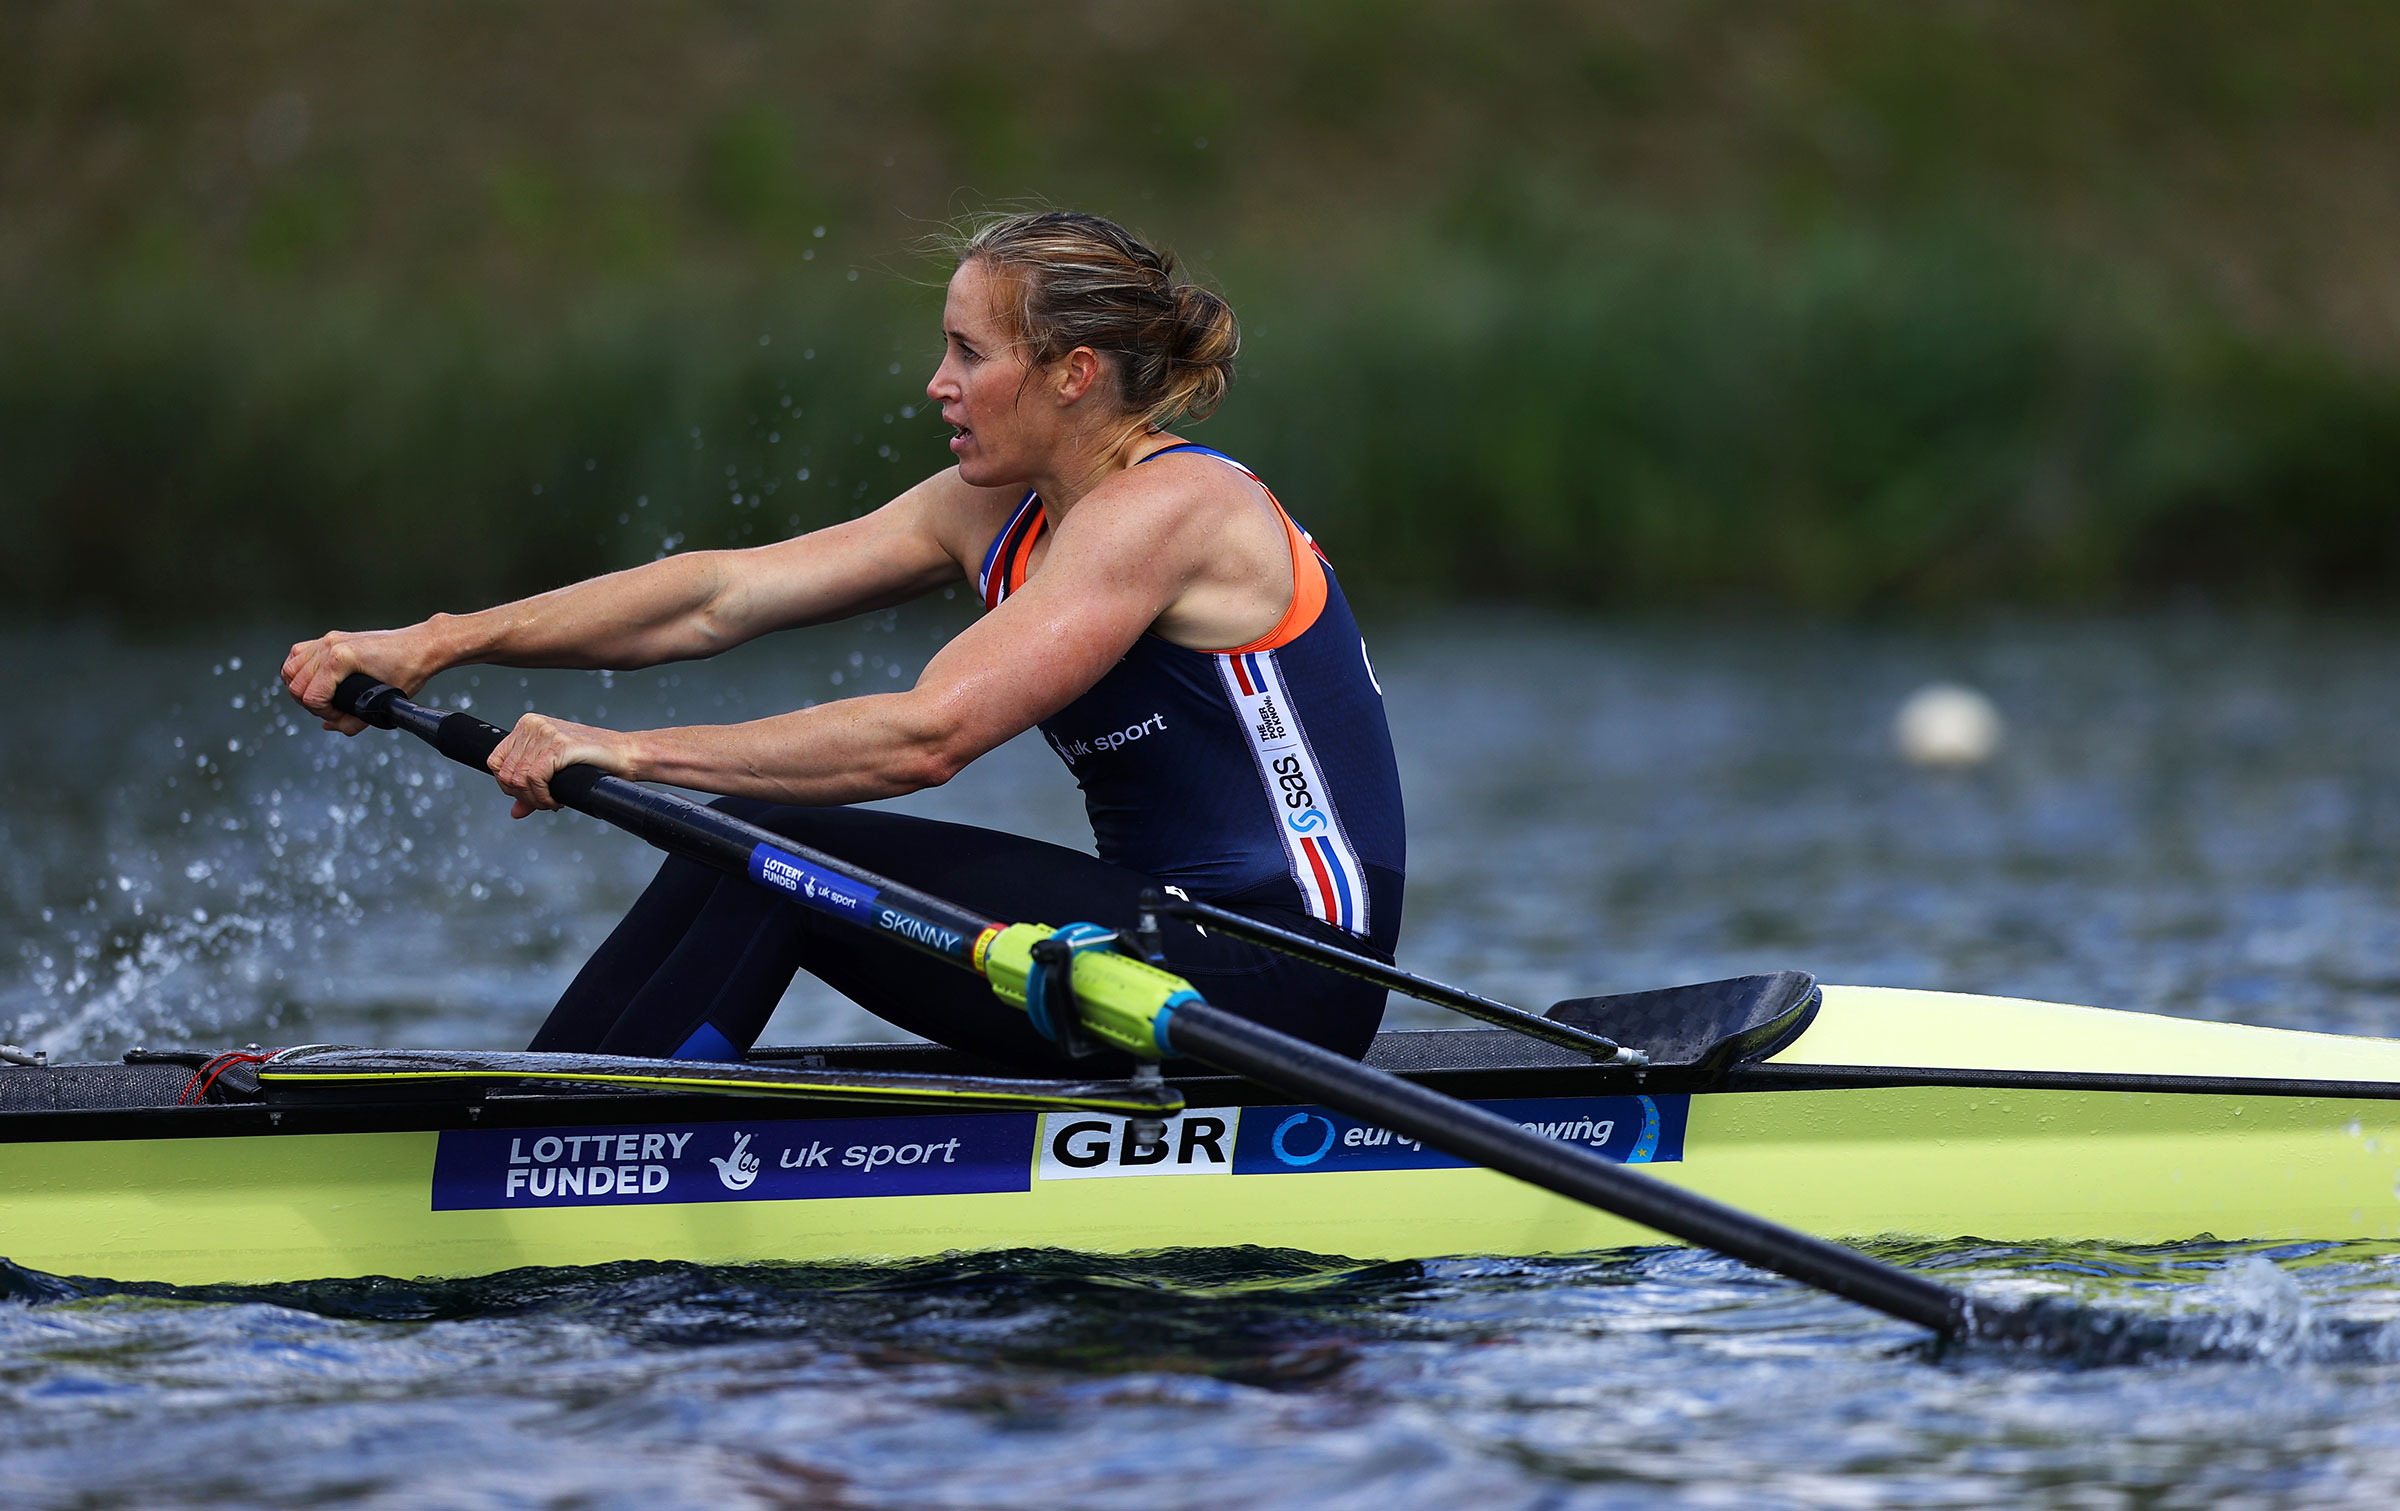 Helen Glover MBE in action during a TeamGB Rowing Training Session on May 05, 2021 in Reading, England.